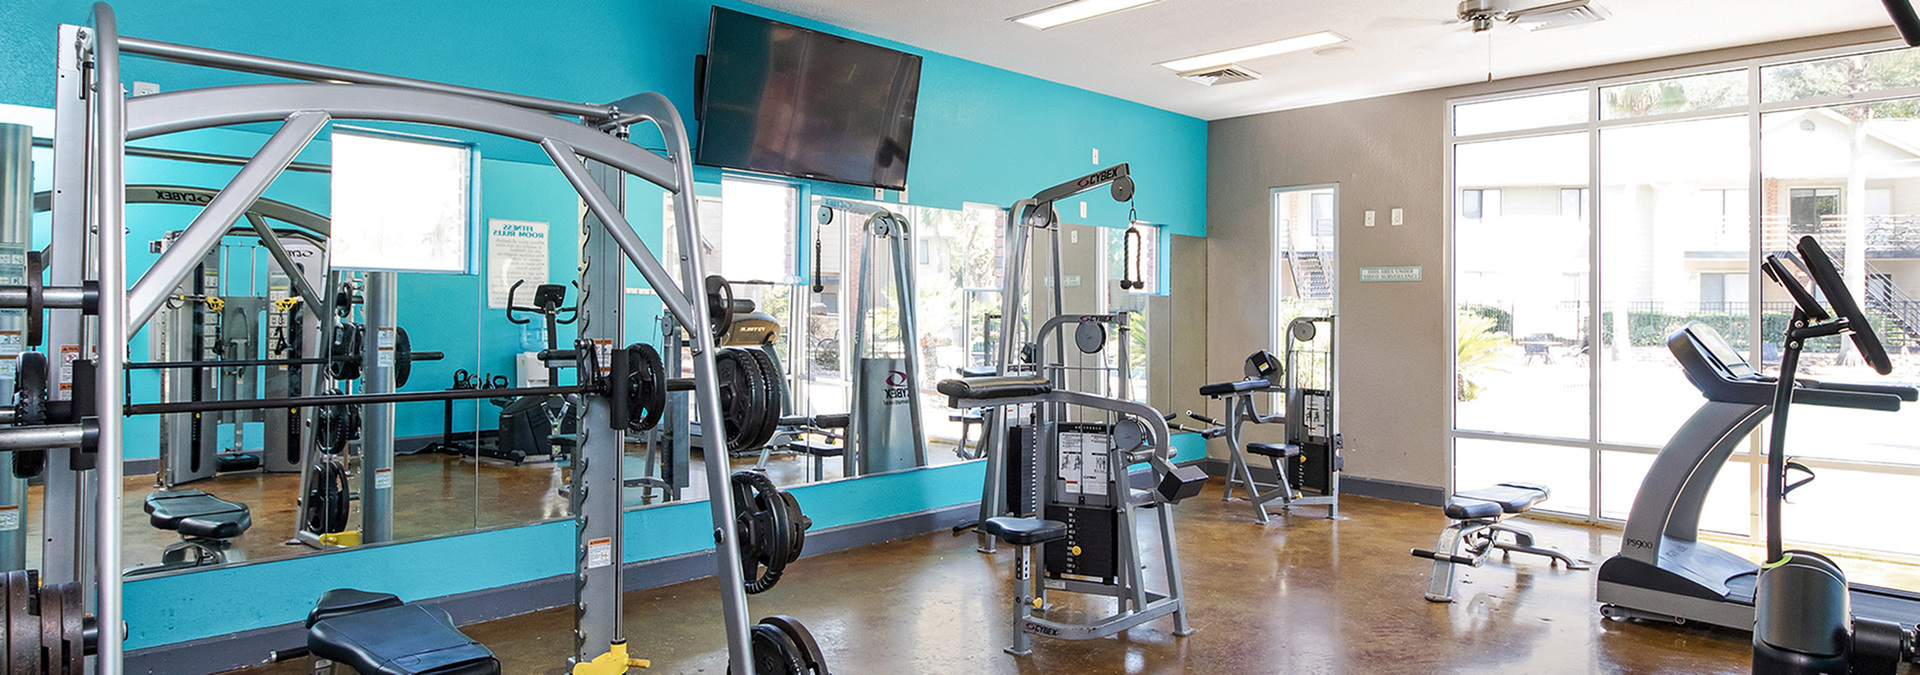 State-of-the-Art Fitness Center | Apartments Near FSU | Dwell Tallahassee Student Living